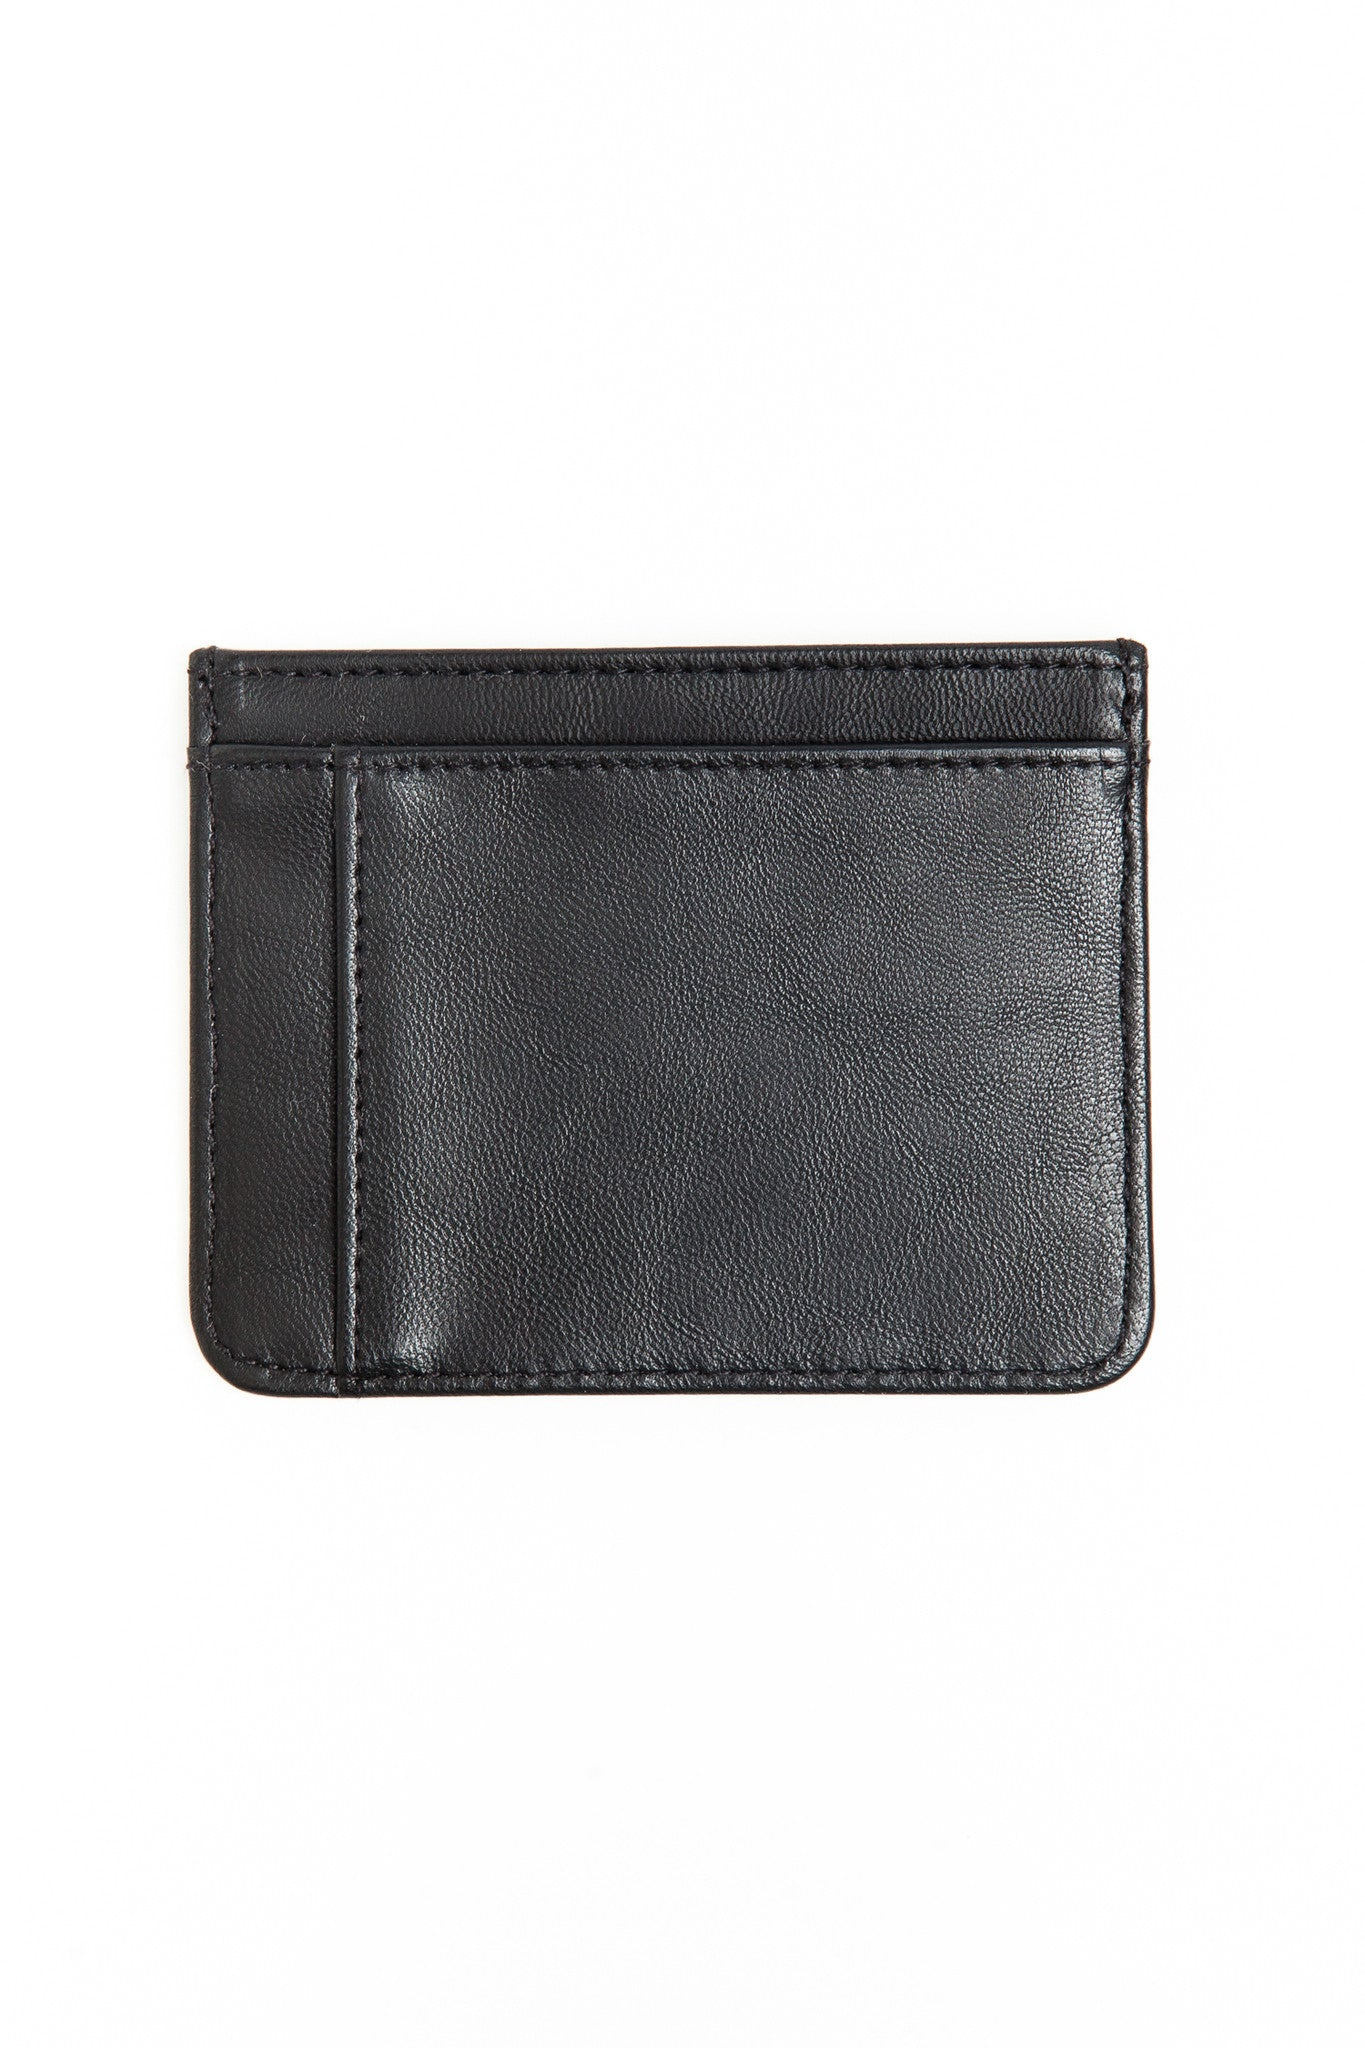 OBEY - Gentry Deuce ID Wallet, Black/Tan - The Giant Peach - 2